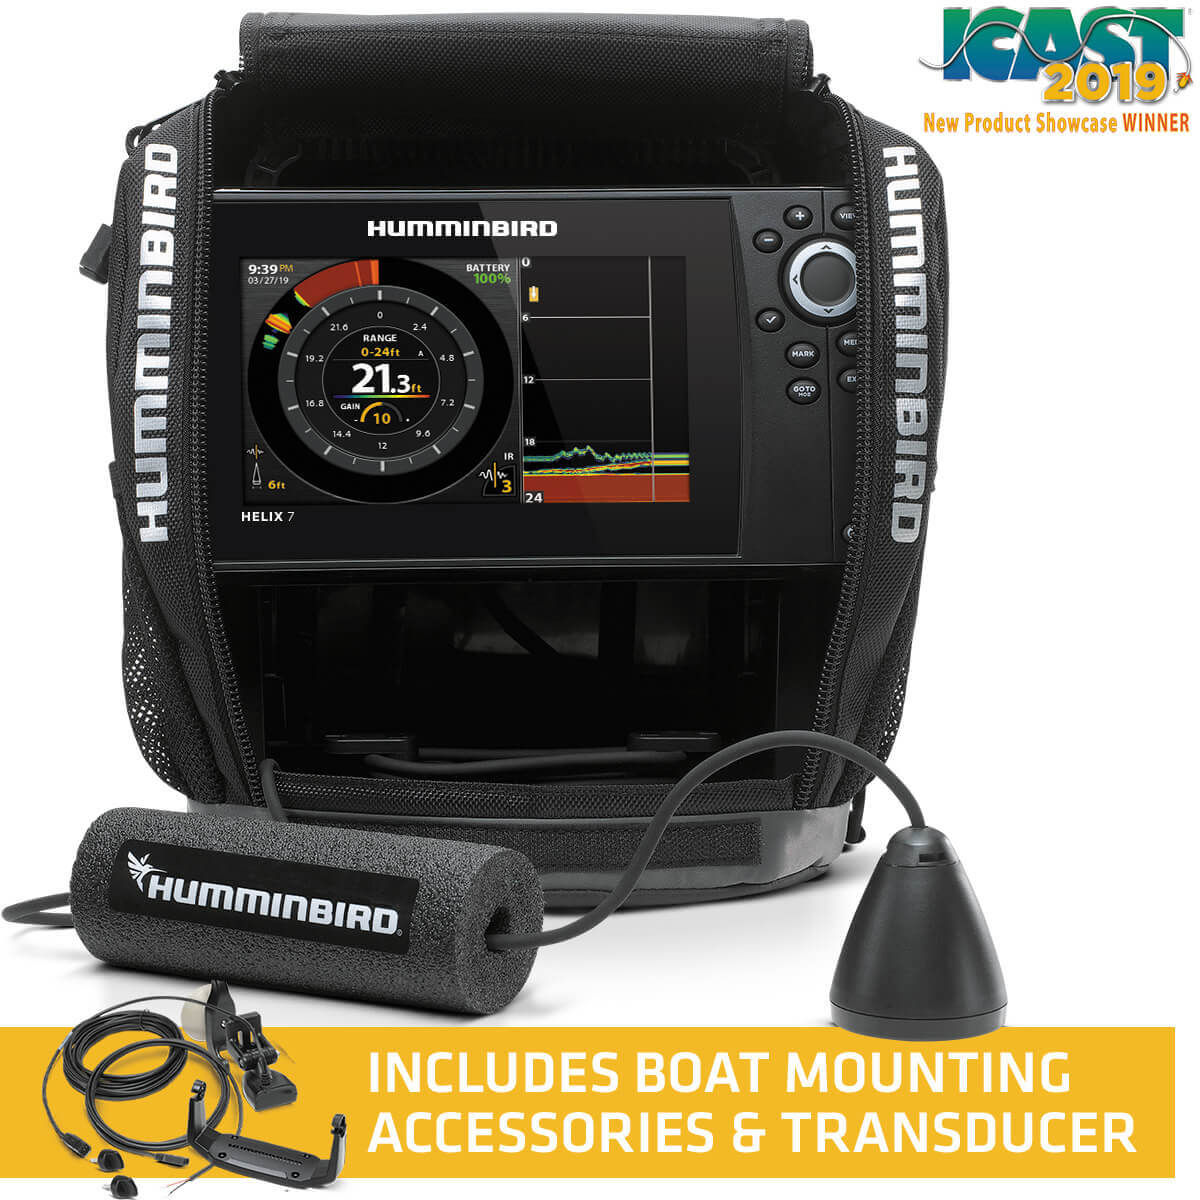 Humminbird 411210-1 Helix 7 Chirp G3N, Ice Sonar GPS System All-Season Kit